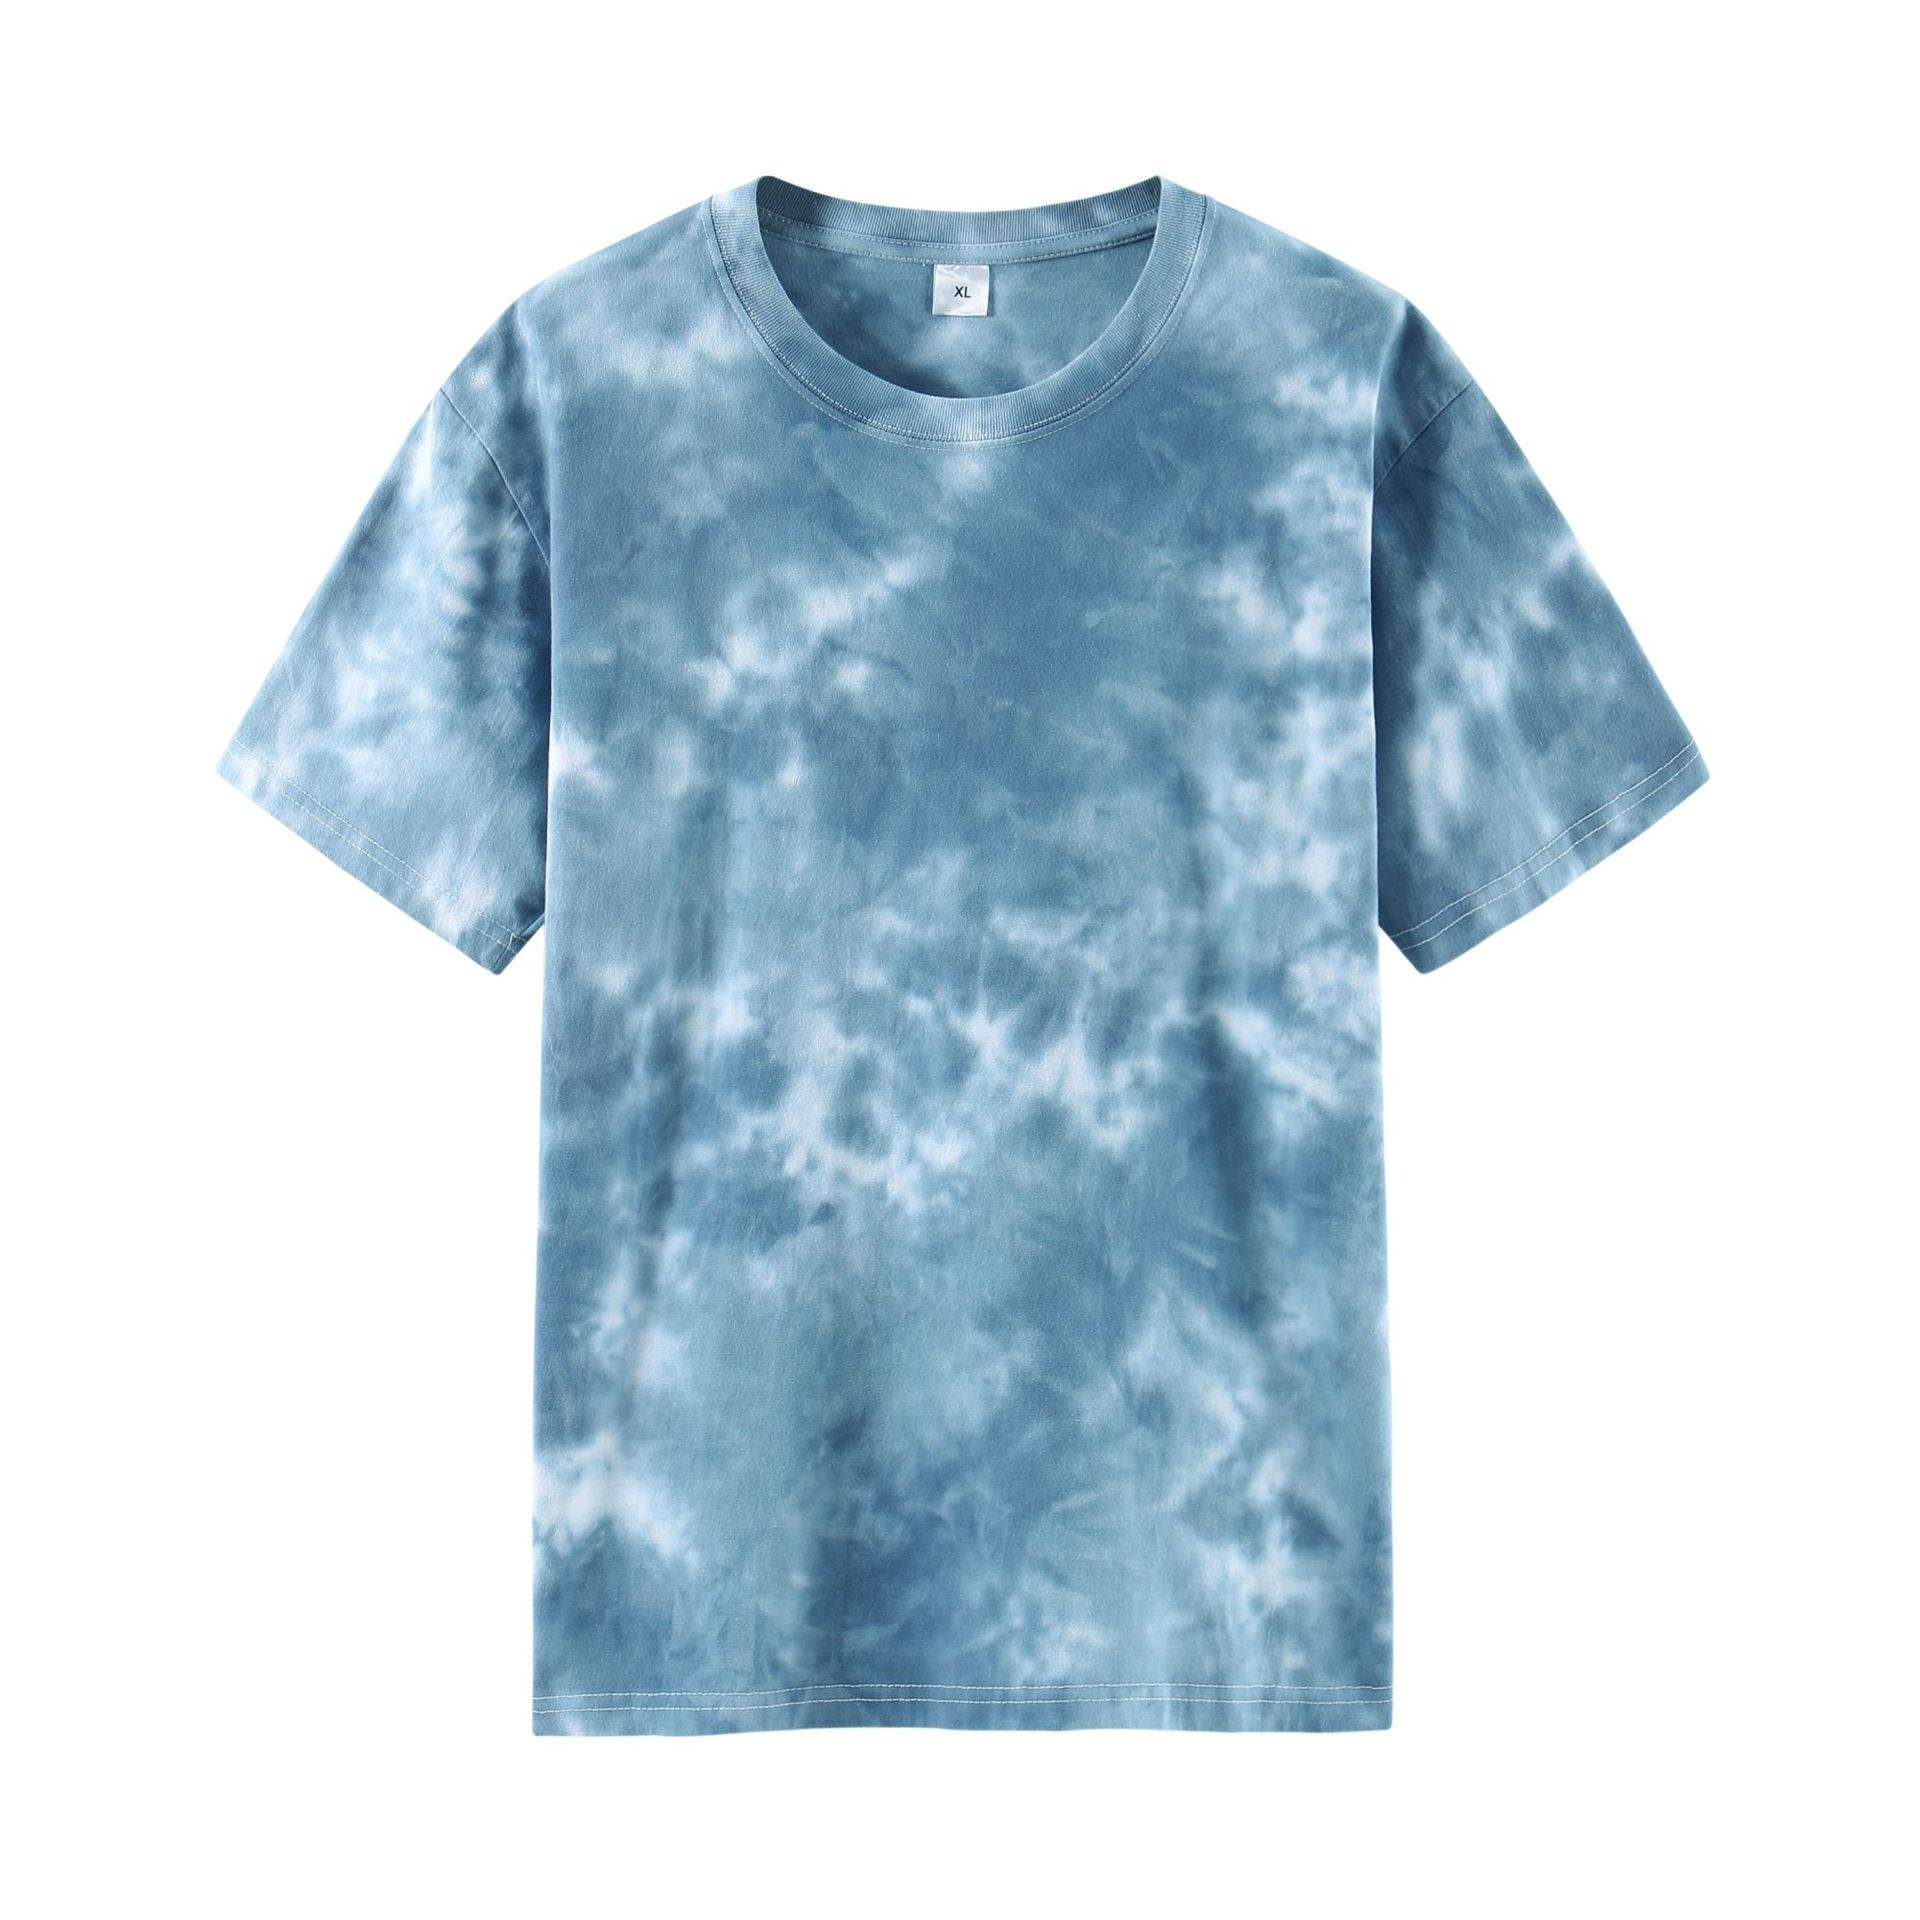 Cotton short-sleeved T-shirt camouflage tie-dye washed retro loose round neck tie dye t shirts